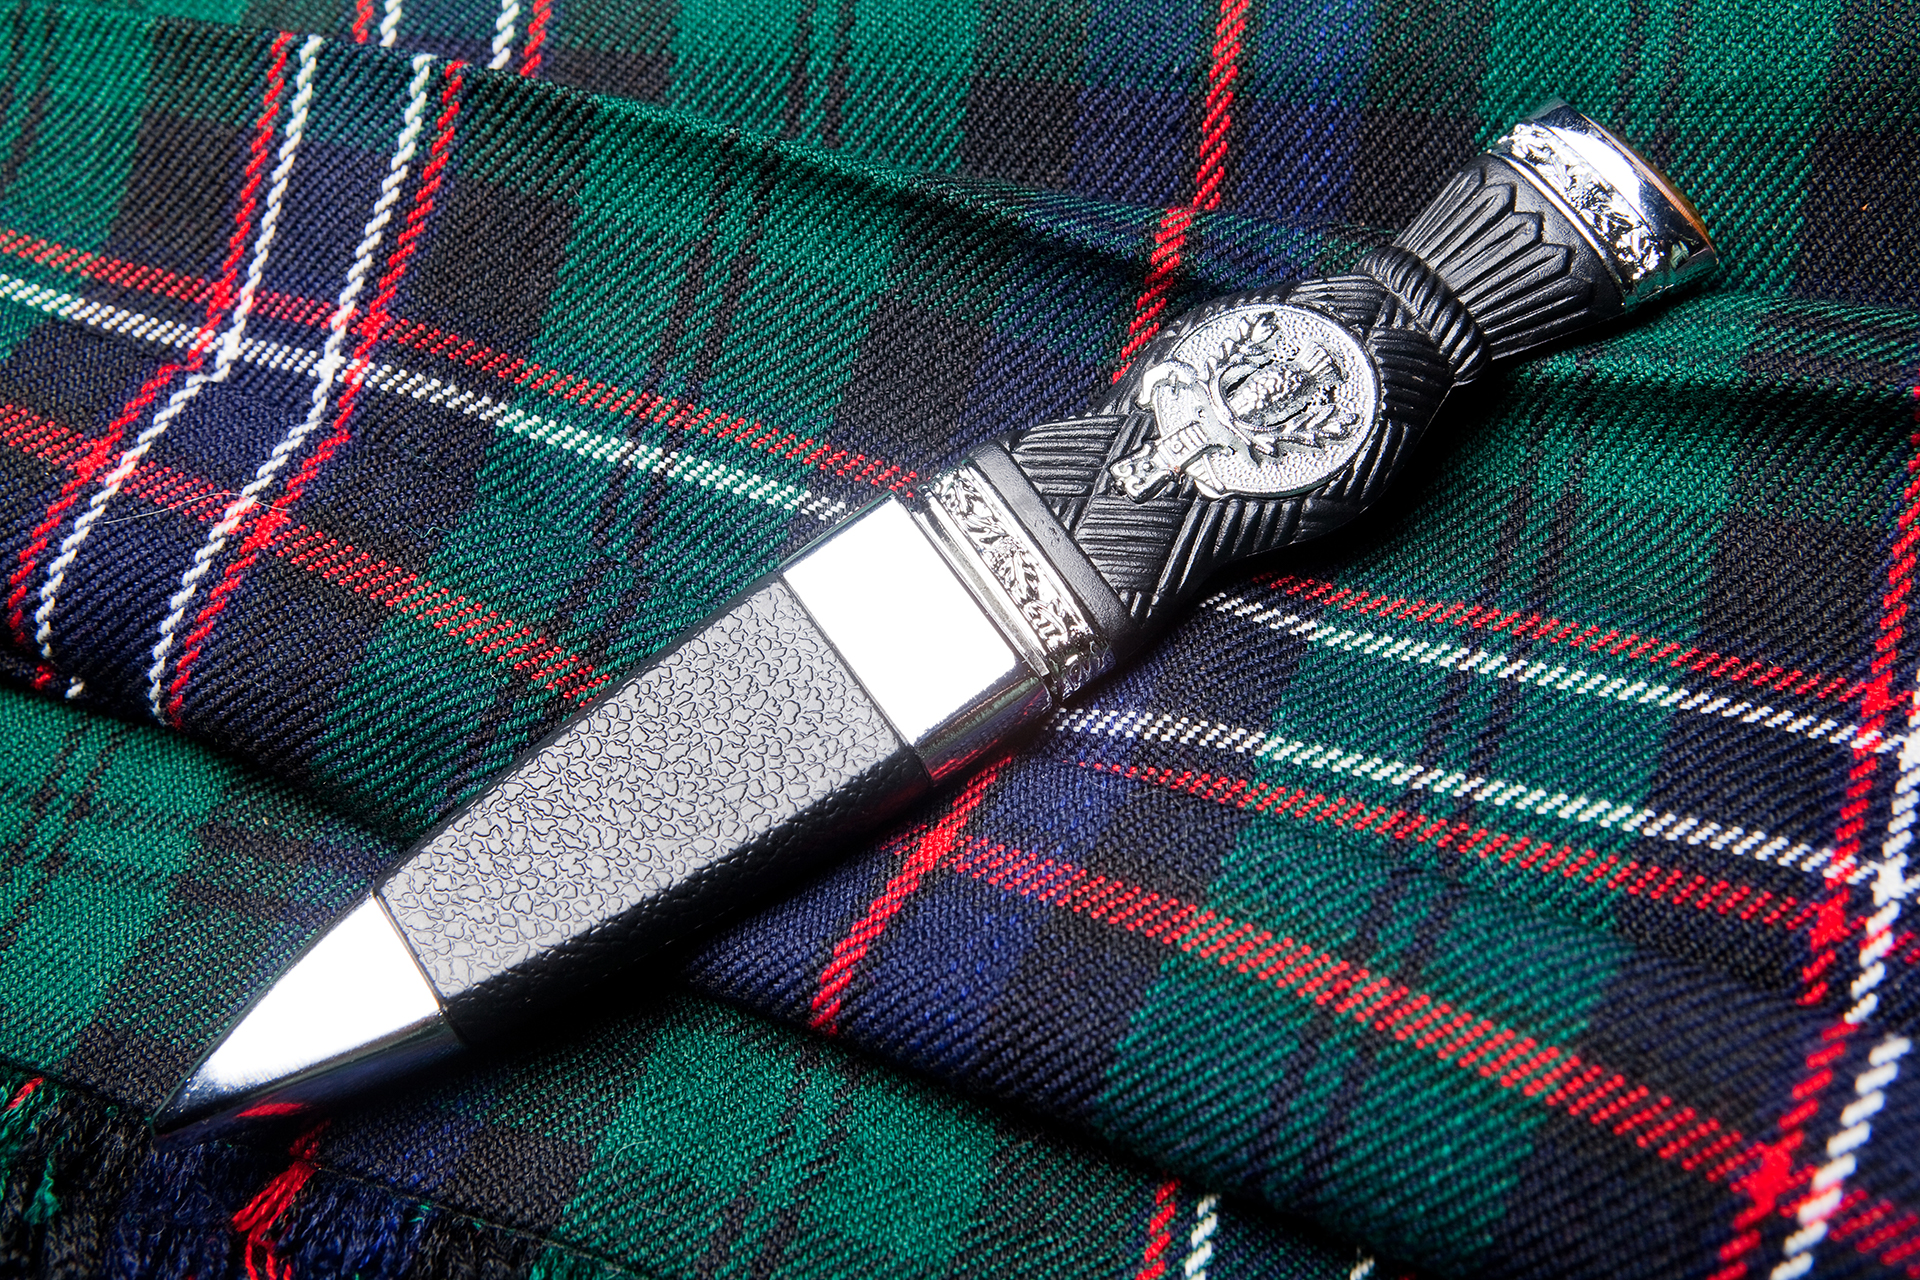 Sgian dubh or traditional scottish hunting knife